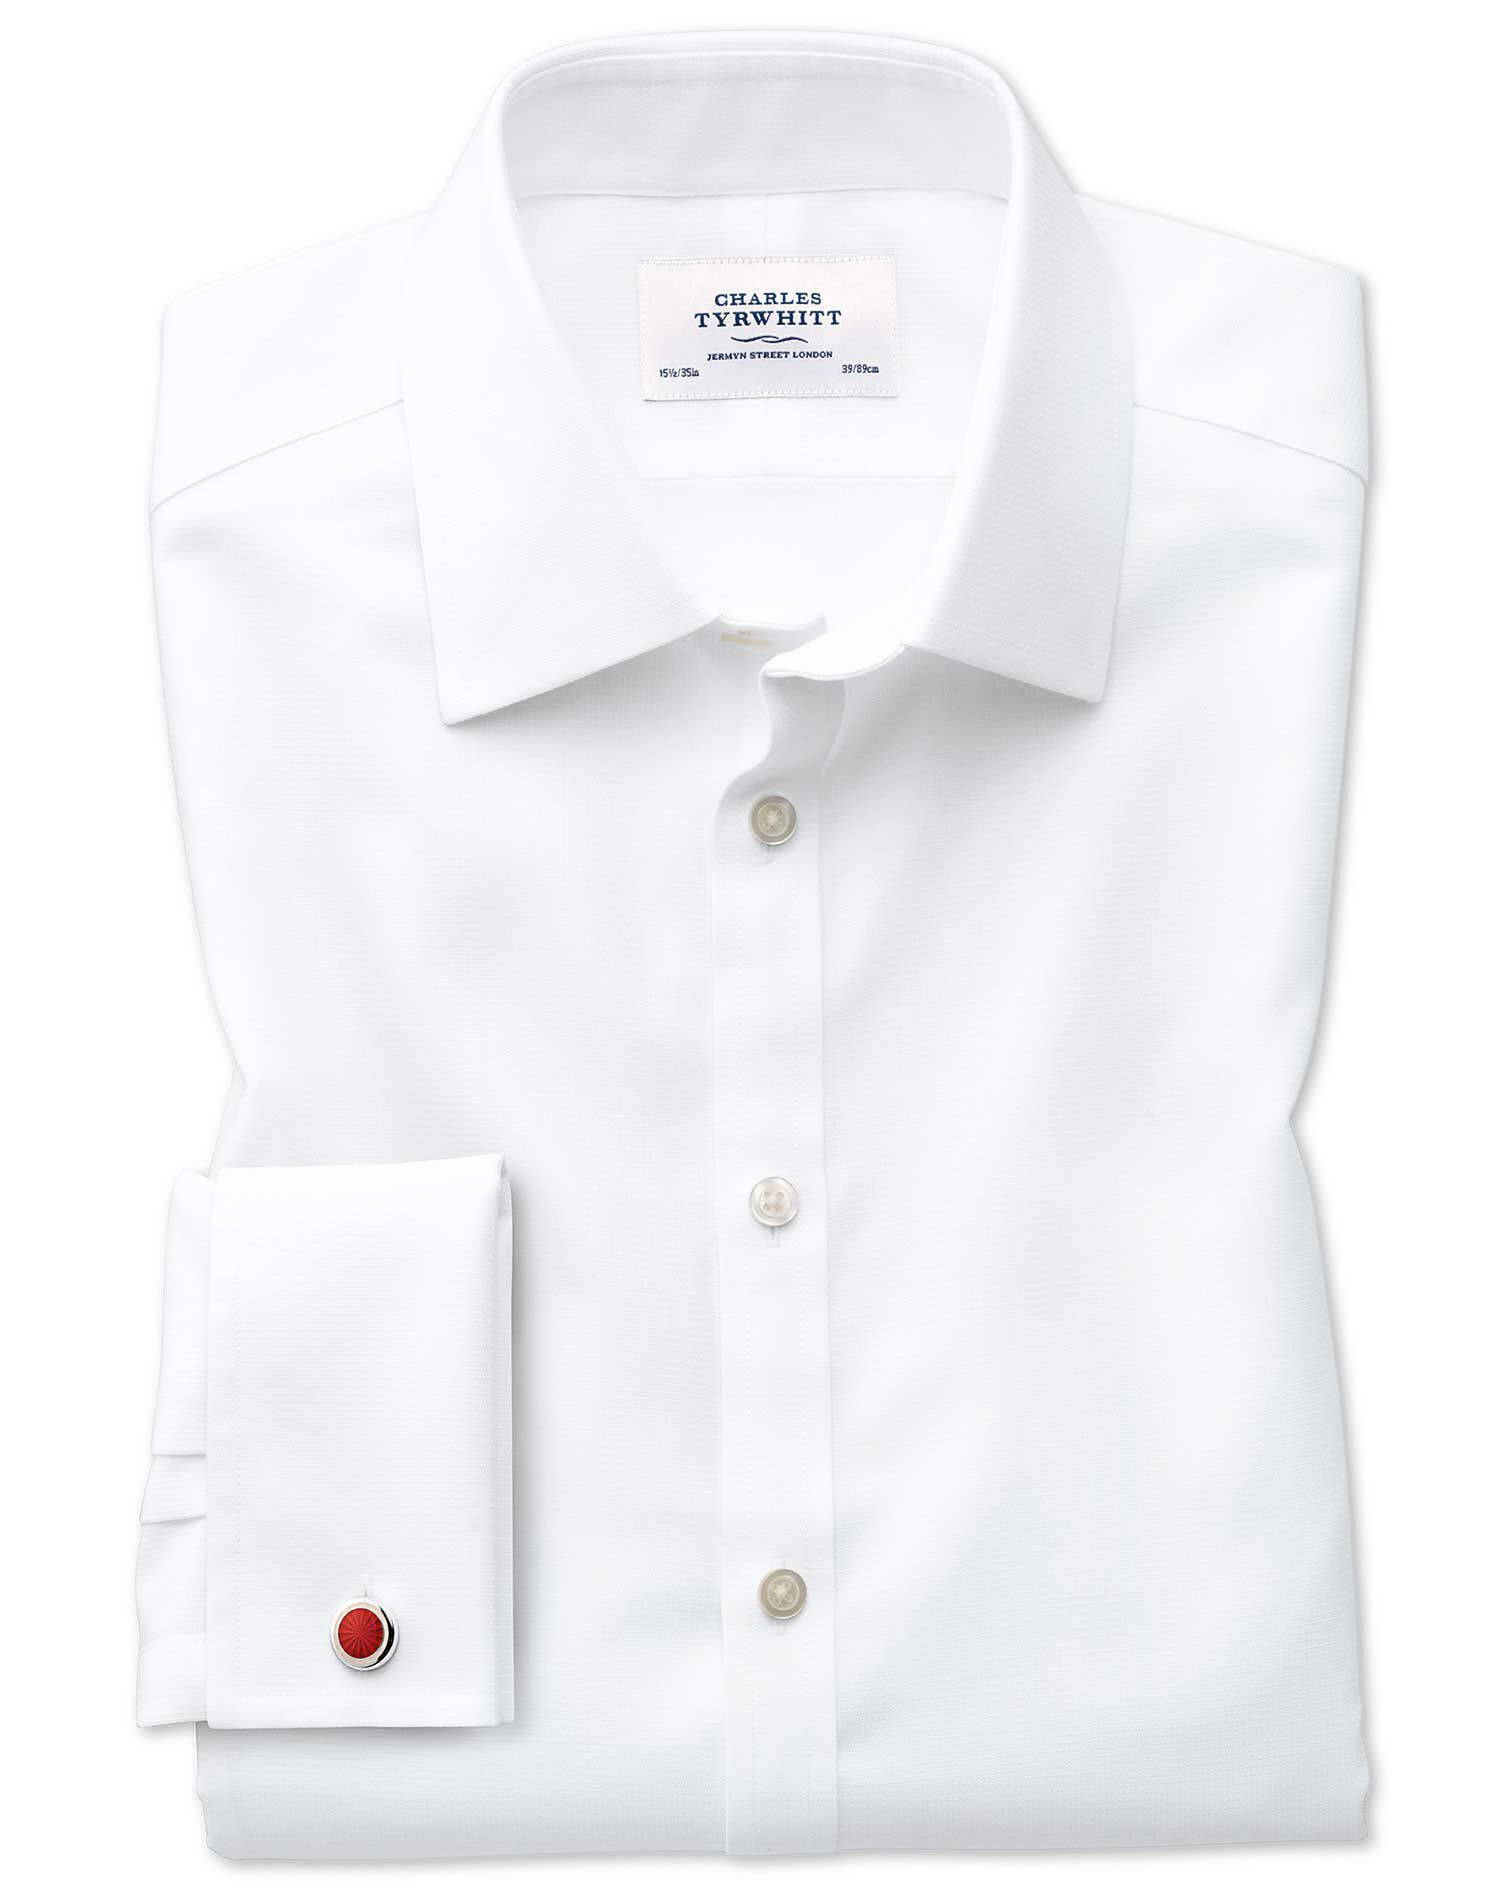 Slim Fit Non-Iron Square Weave White Cotton Formal Shirt Double Cuff Size 17/34 by Charles Tyrwhitt